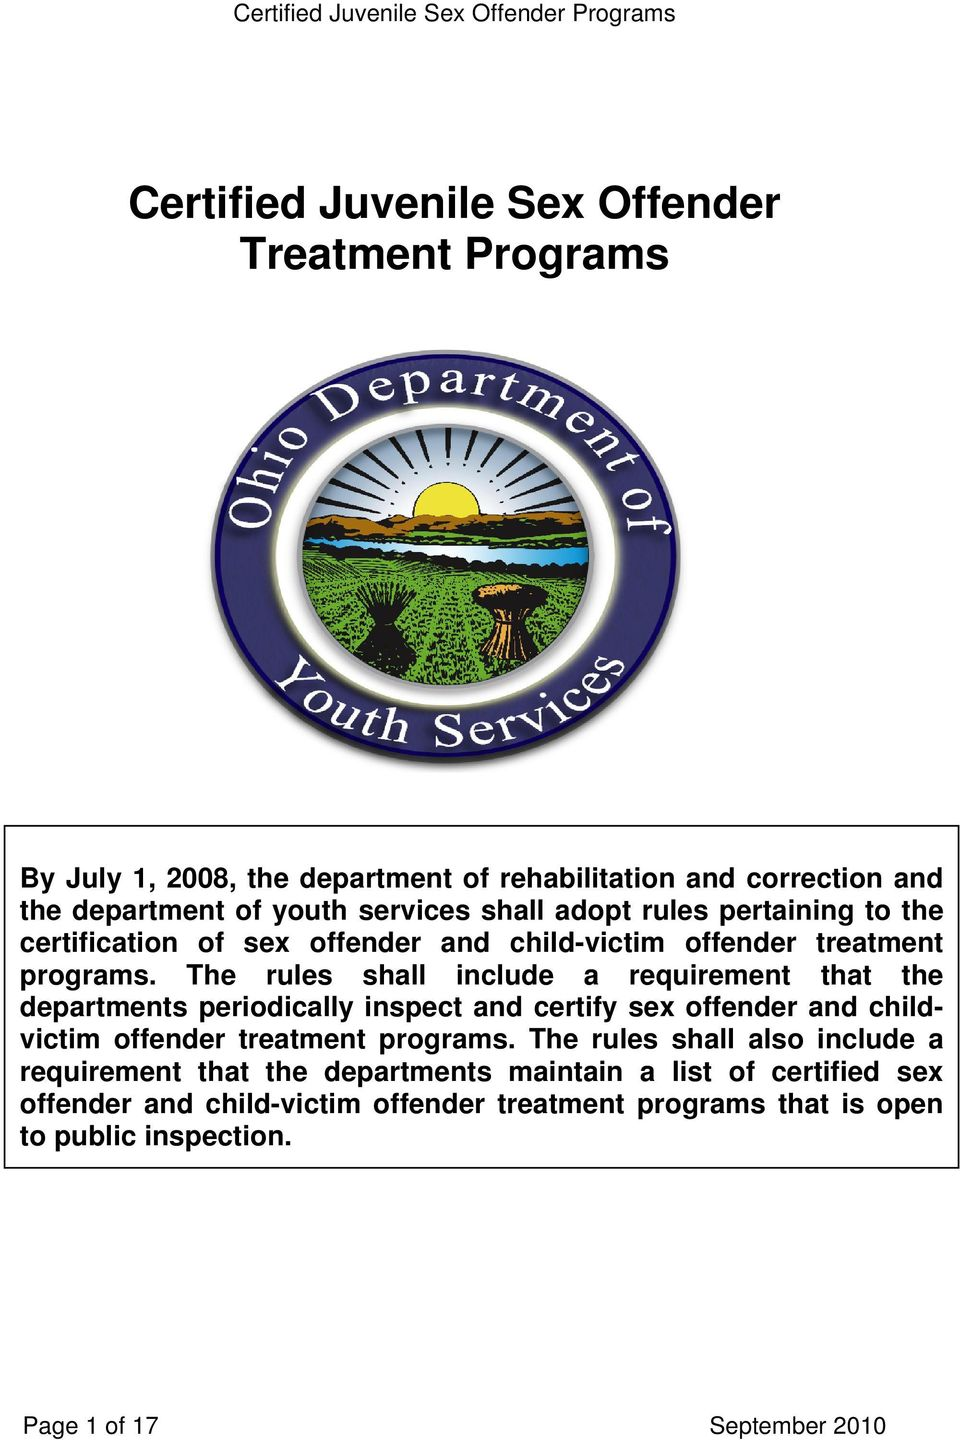 Certification in sex offender treatment